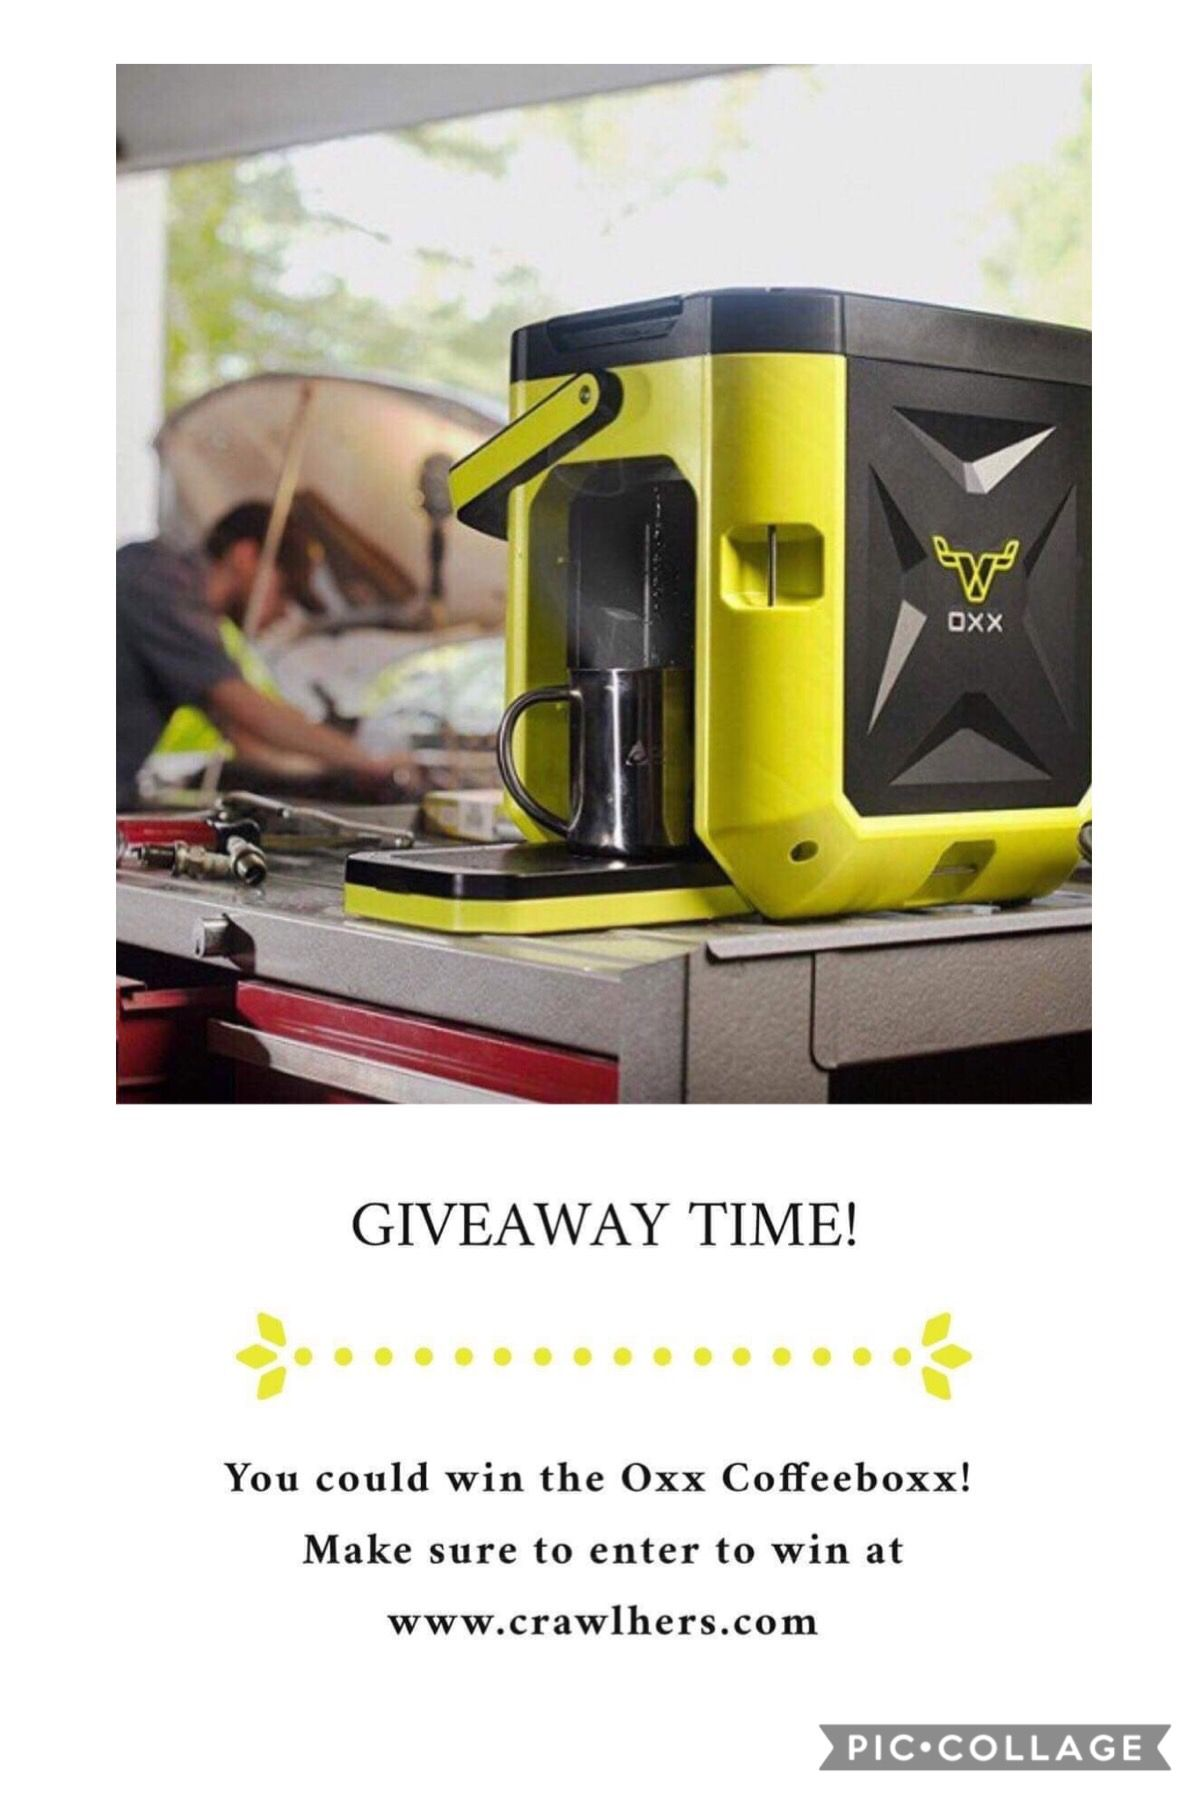 ENTER TO WIN a COFFEEBOXX from Crawlher and Oxx